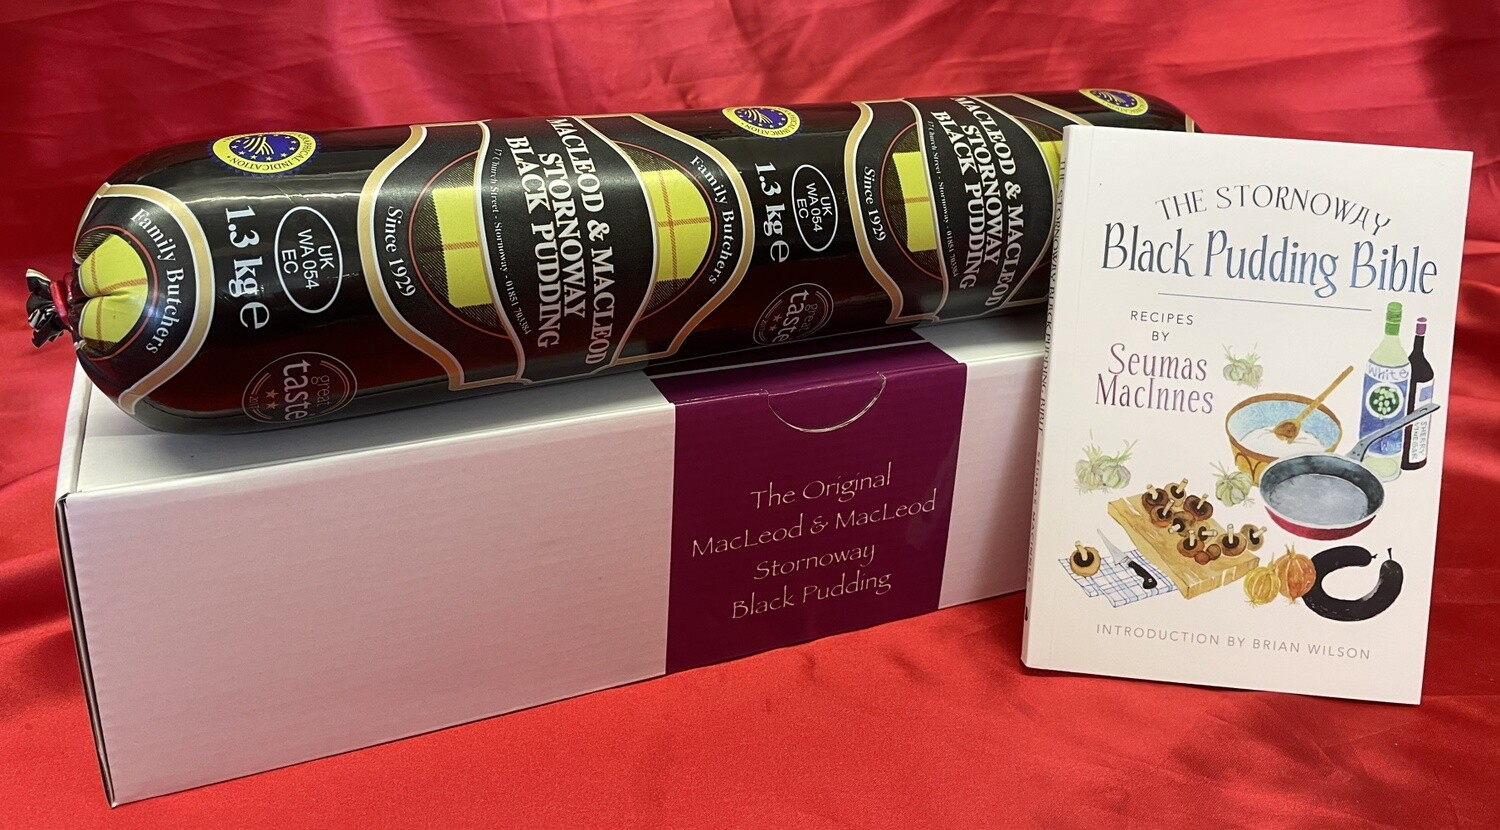 Stornoway Black Pudding in a Gift Box with The Stornoway Black Pudding Bible